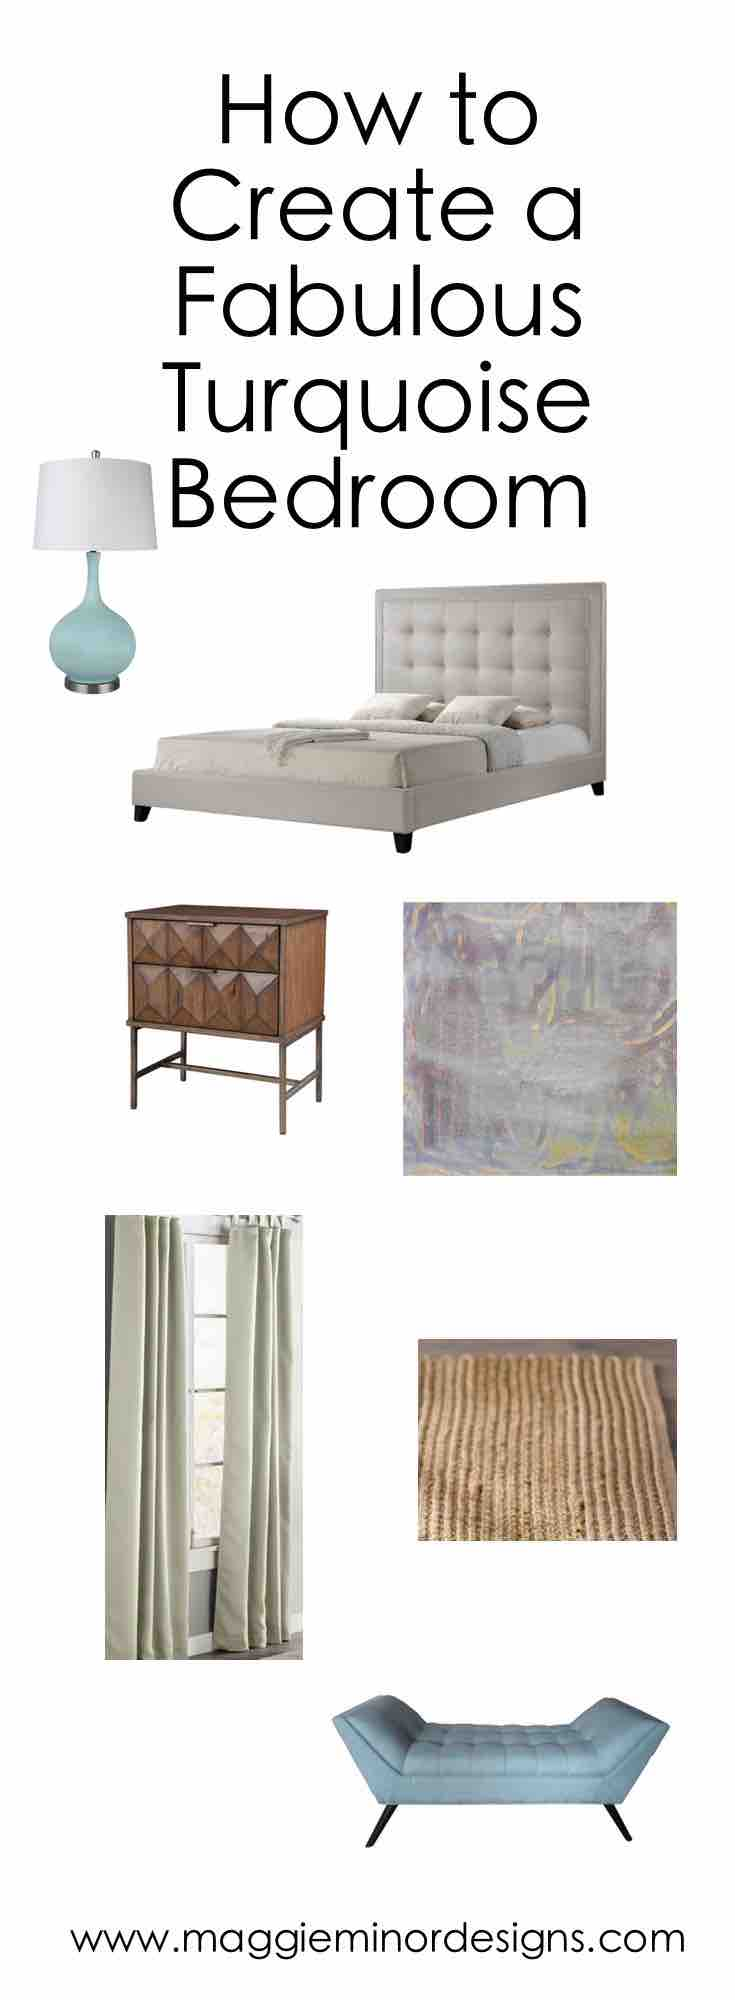 How to Create a Fabulous Turquoise Bedroom Pinterest Long .jpg